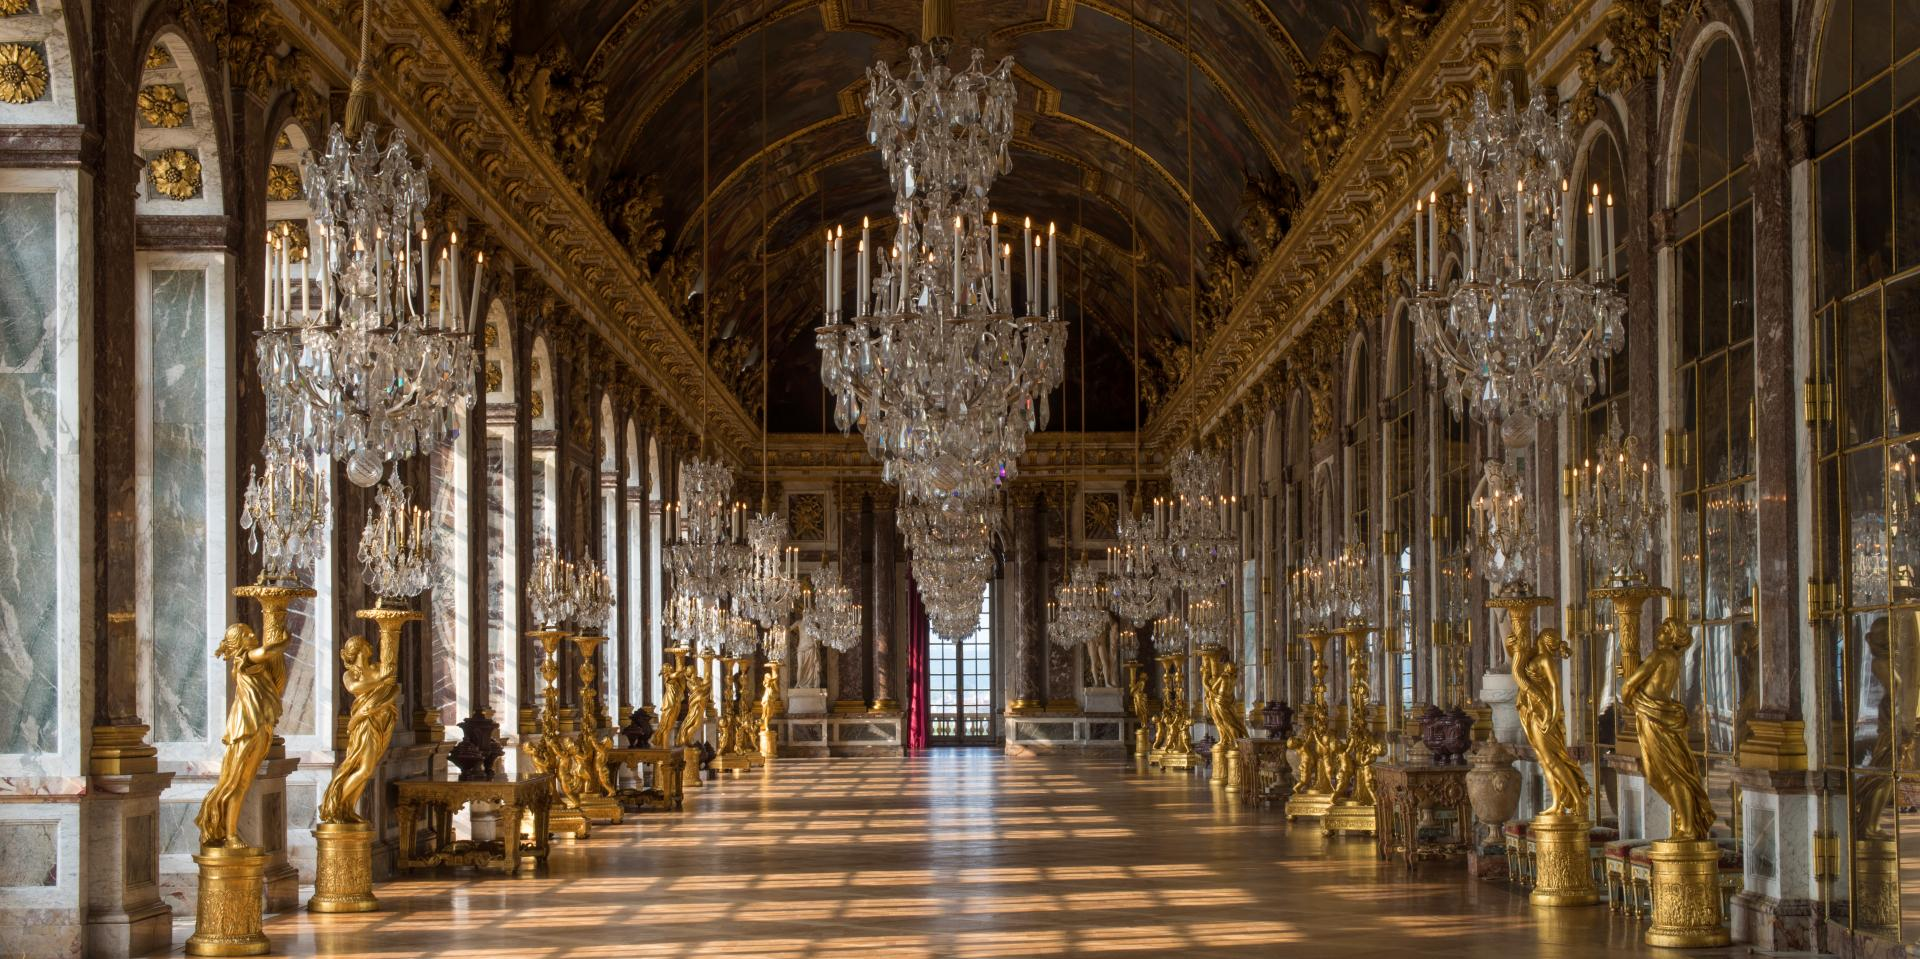 The Hall of Mirror